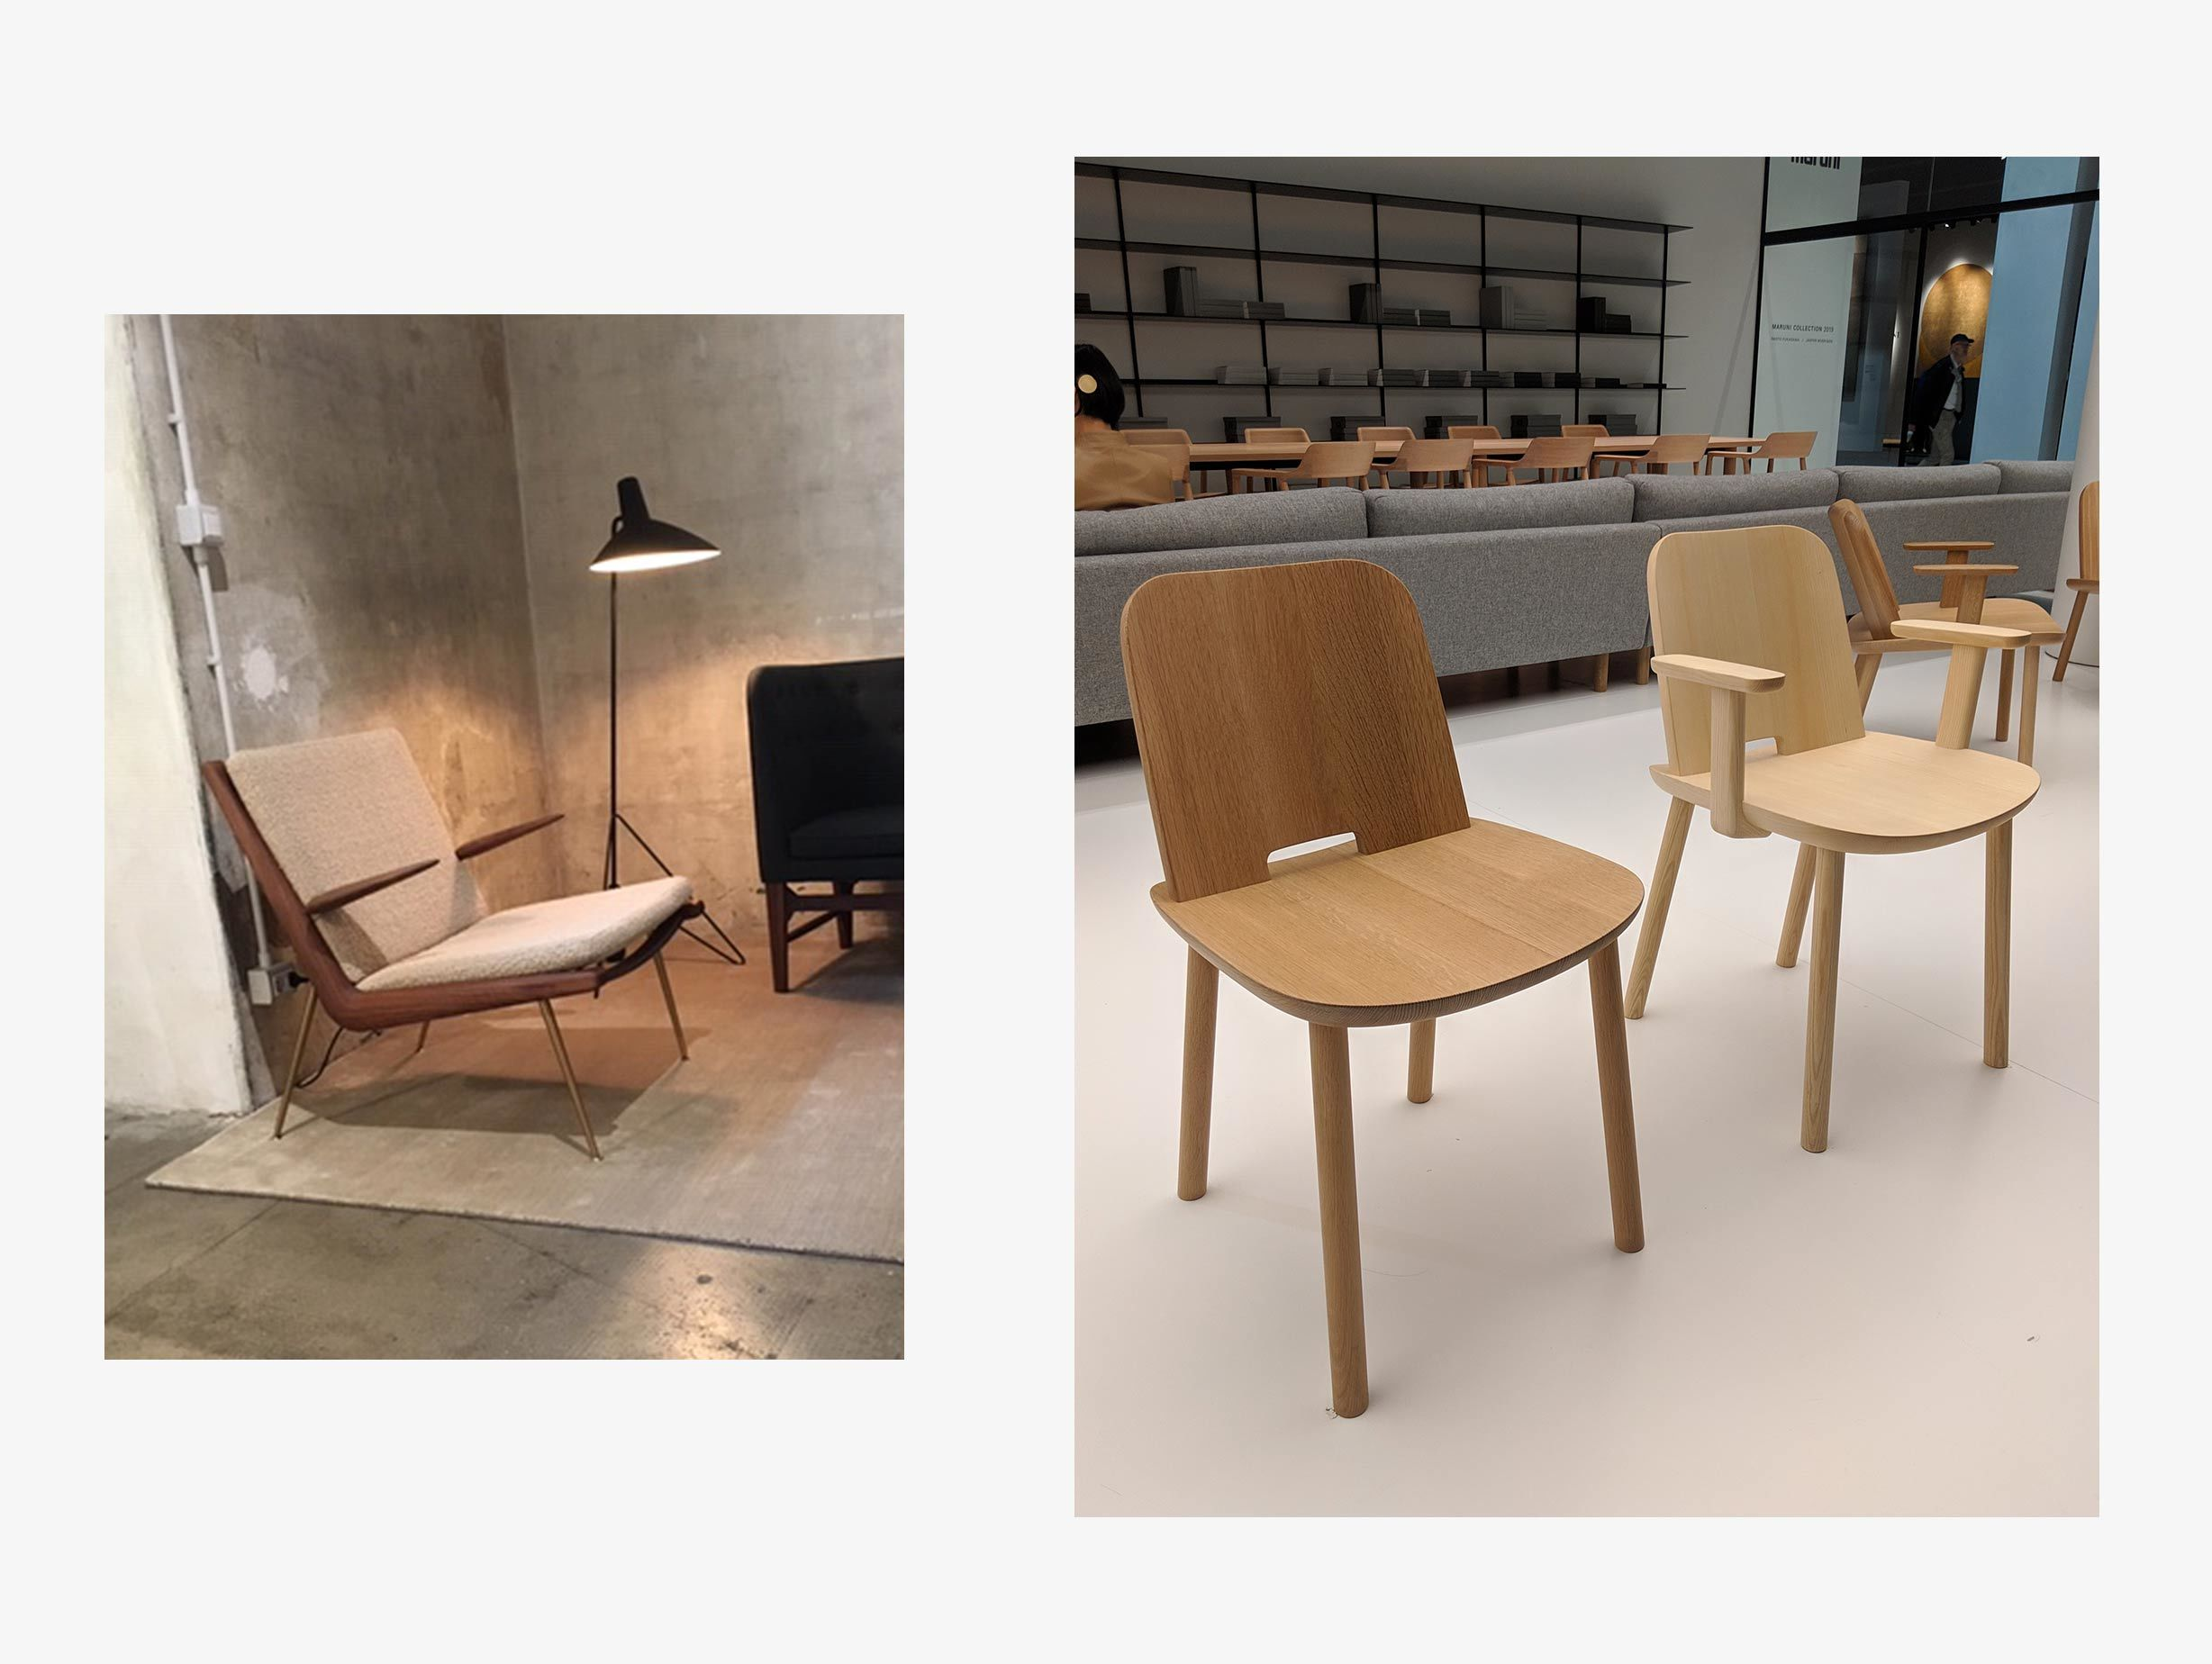 Arte-m Furniture Uk The Edit Milan Design Week 2019 Furniture Highlights Viaduct